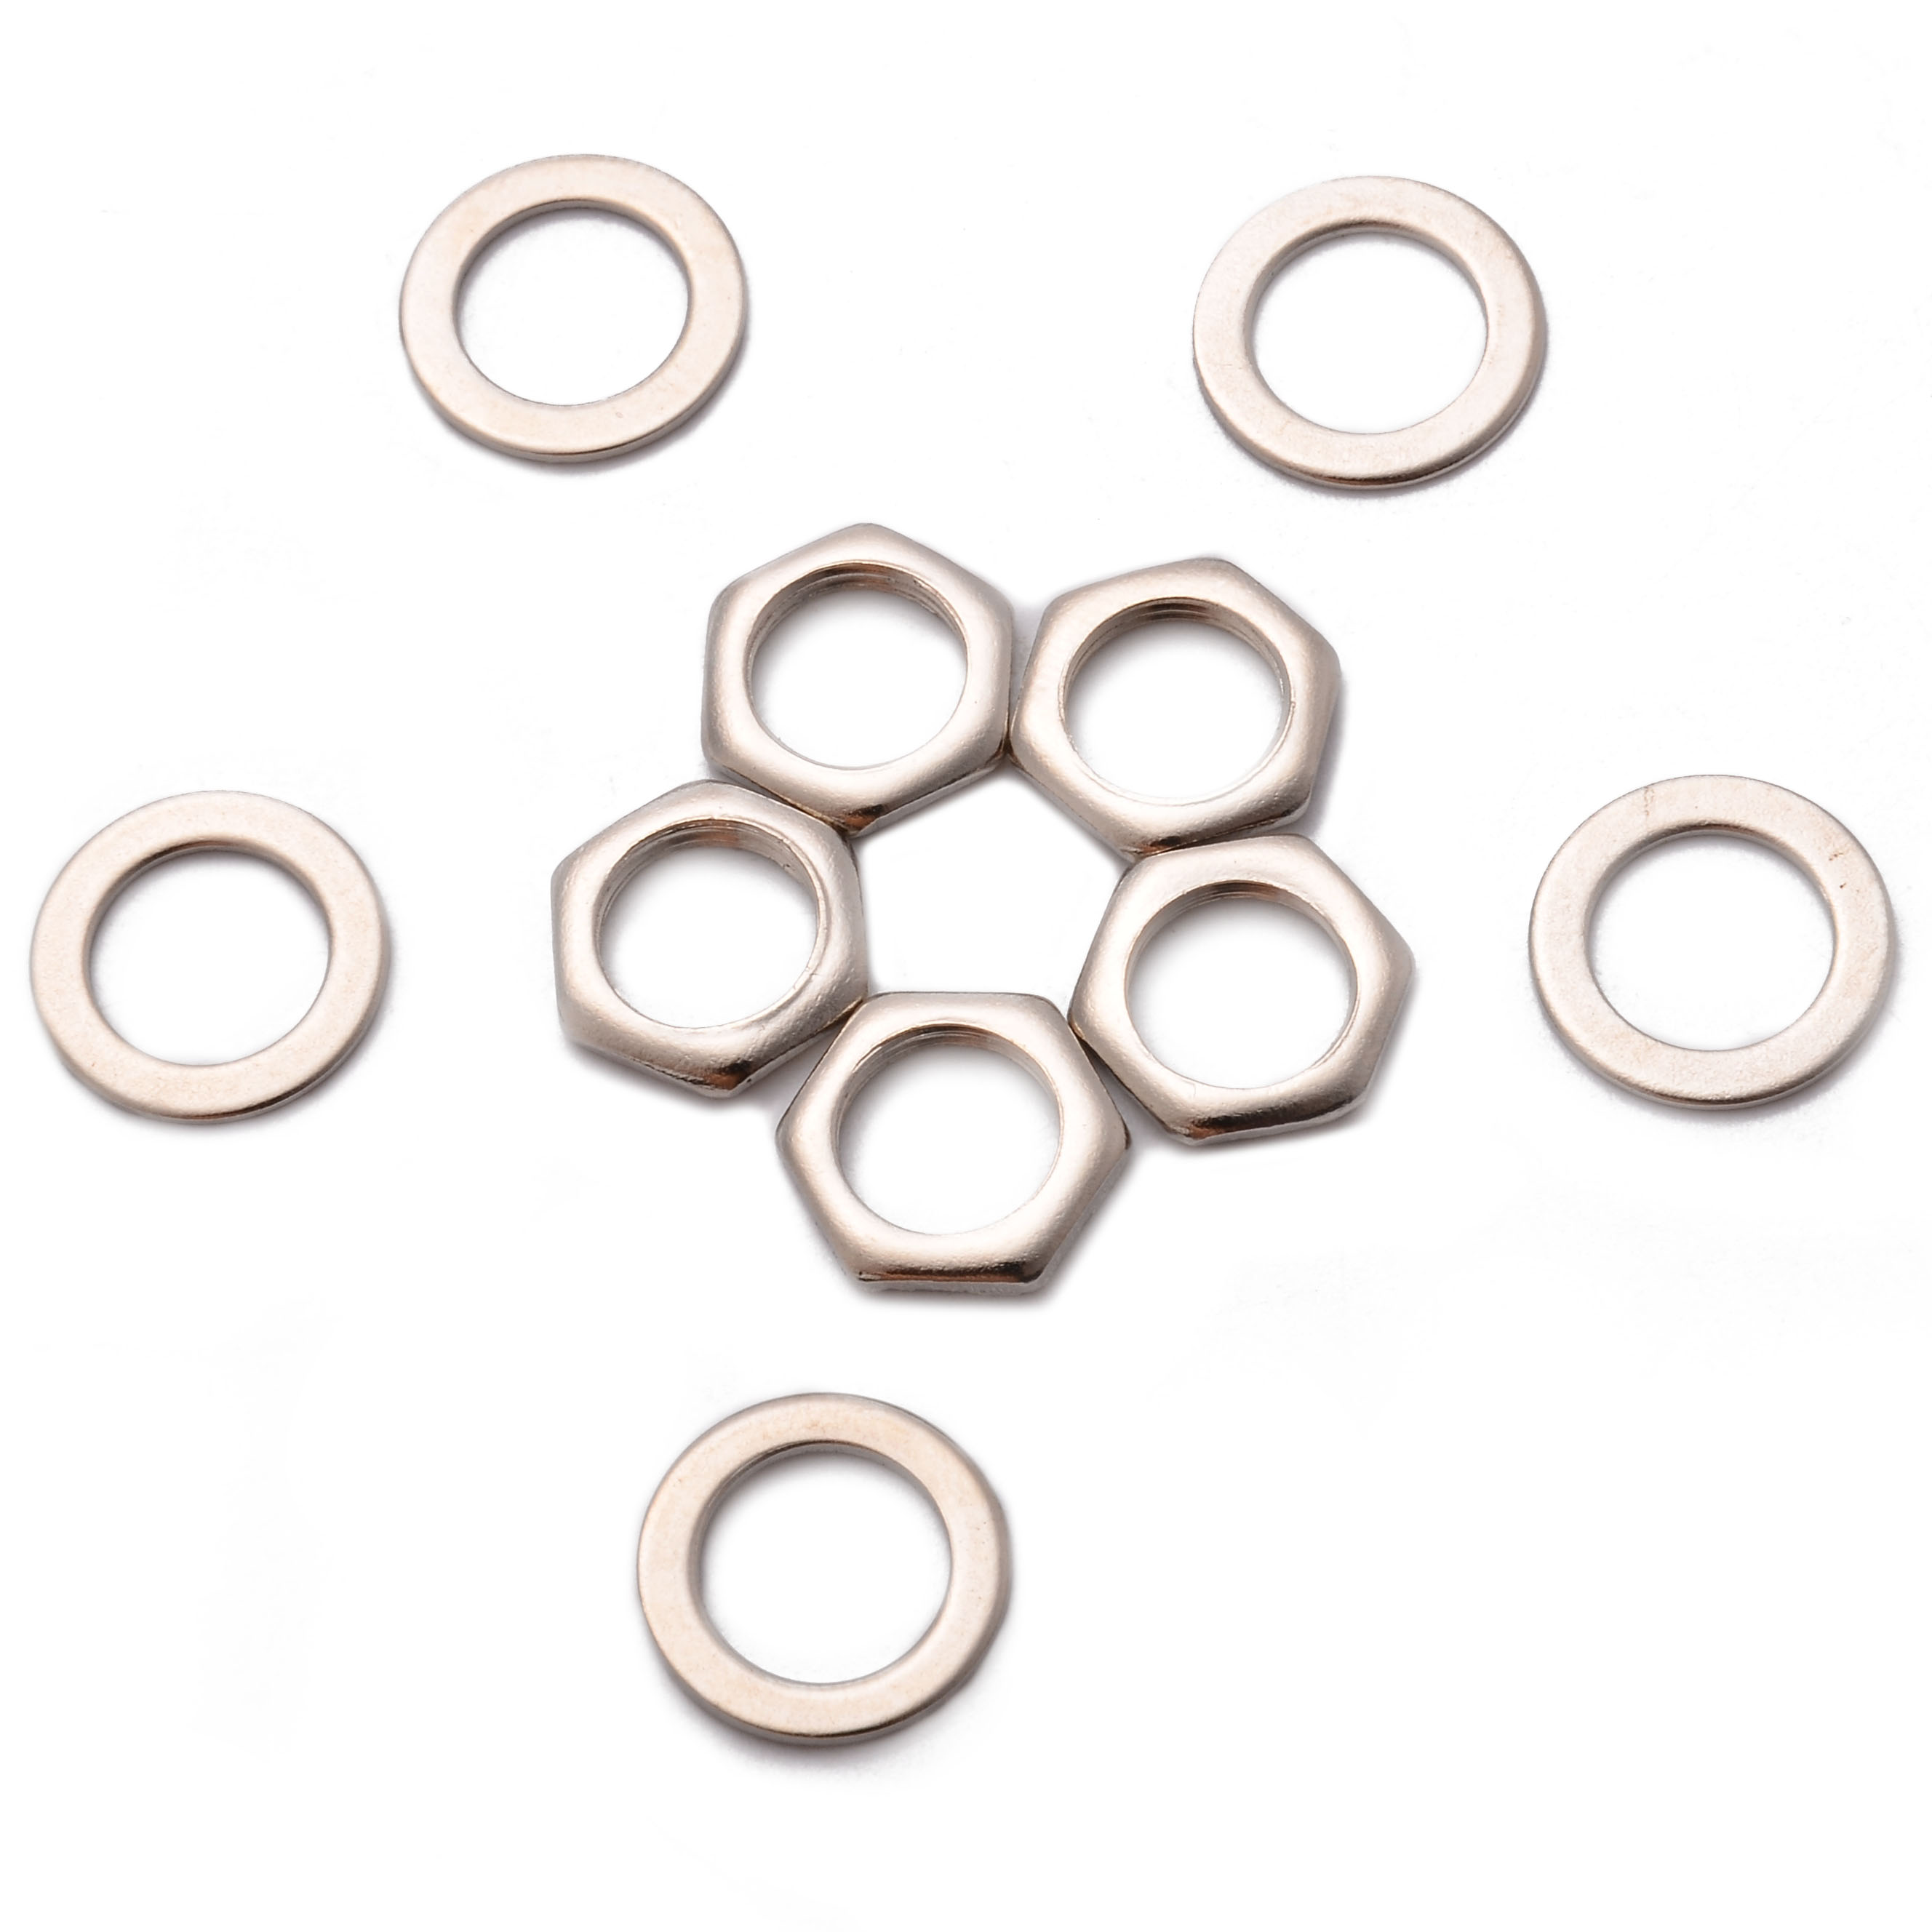 1set 5Pcs Electric Guitar Output Input Jack Replacement Nuts Washers Gaskets For Electric Guitars And Bass Accessories